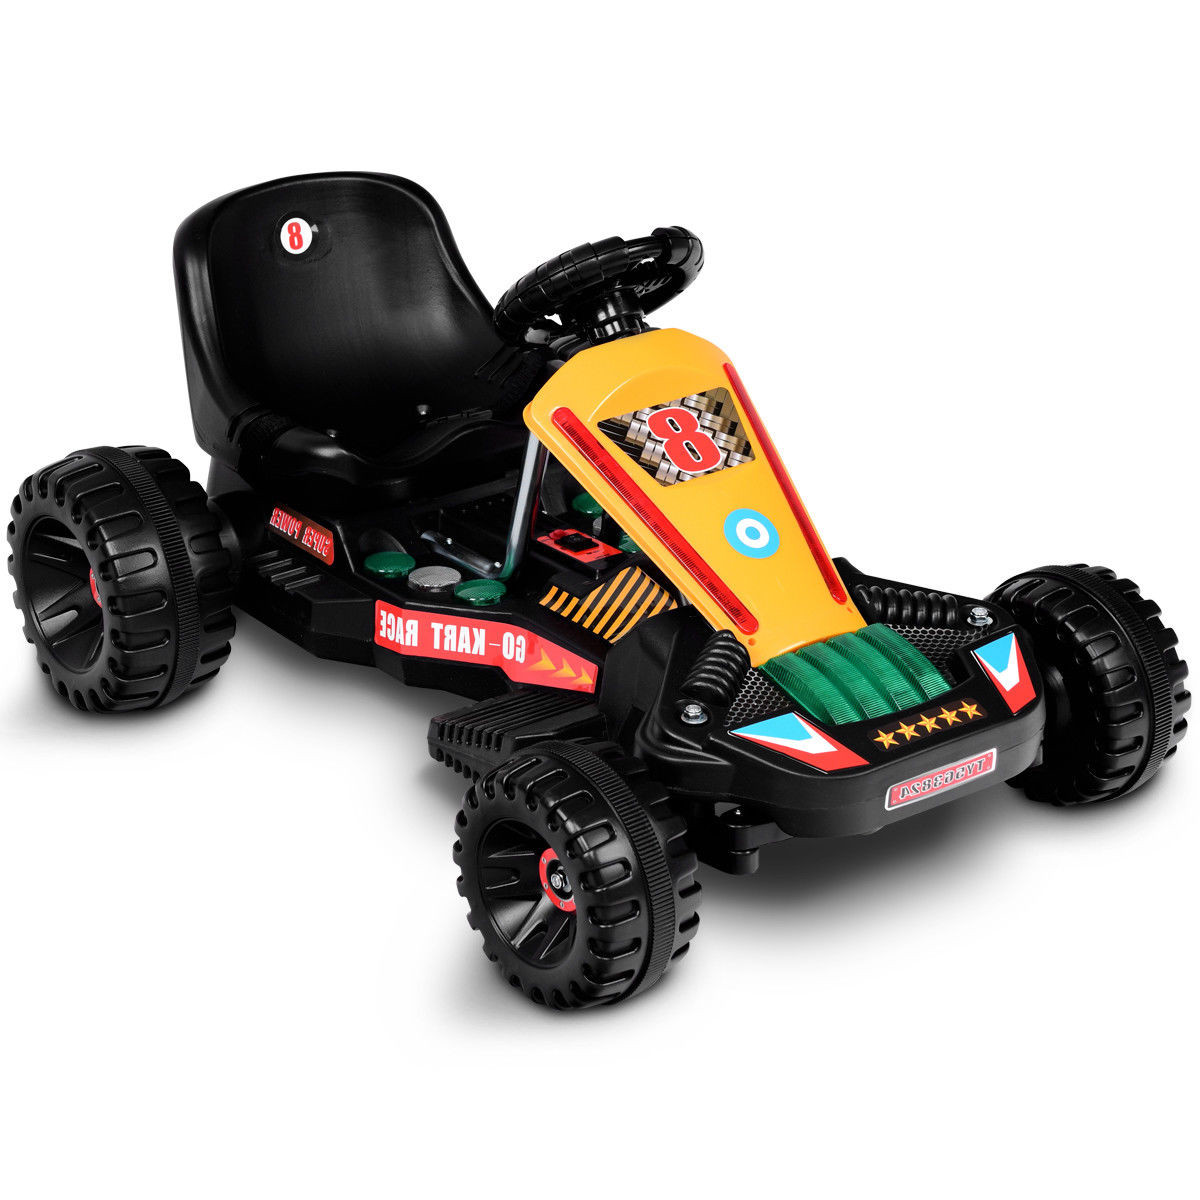 Gymax Go Kart Kids Ride On Car Electric Ed 4 Wheel Racer Buggy Toy